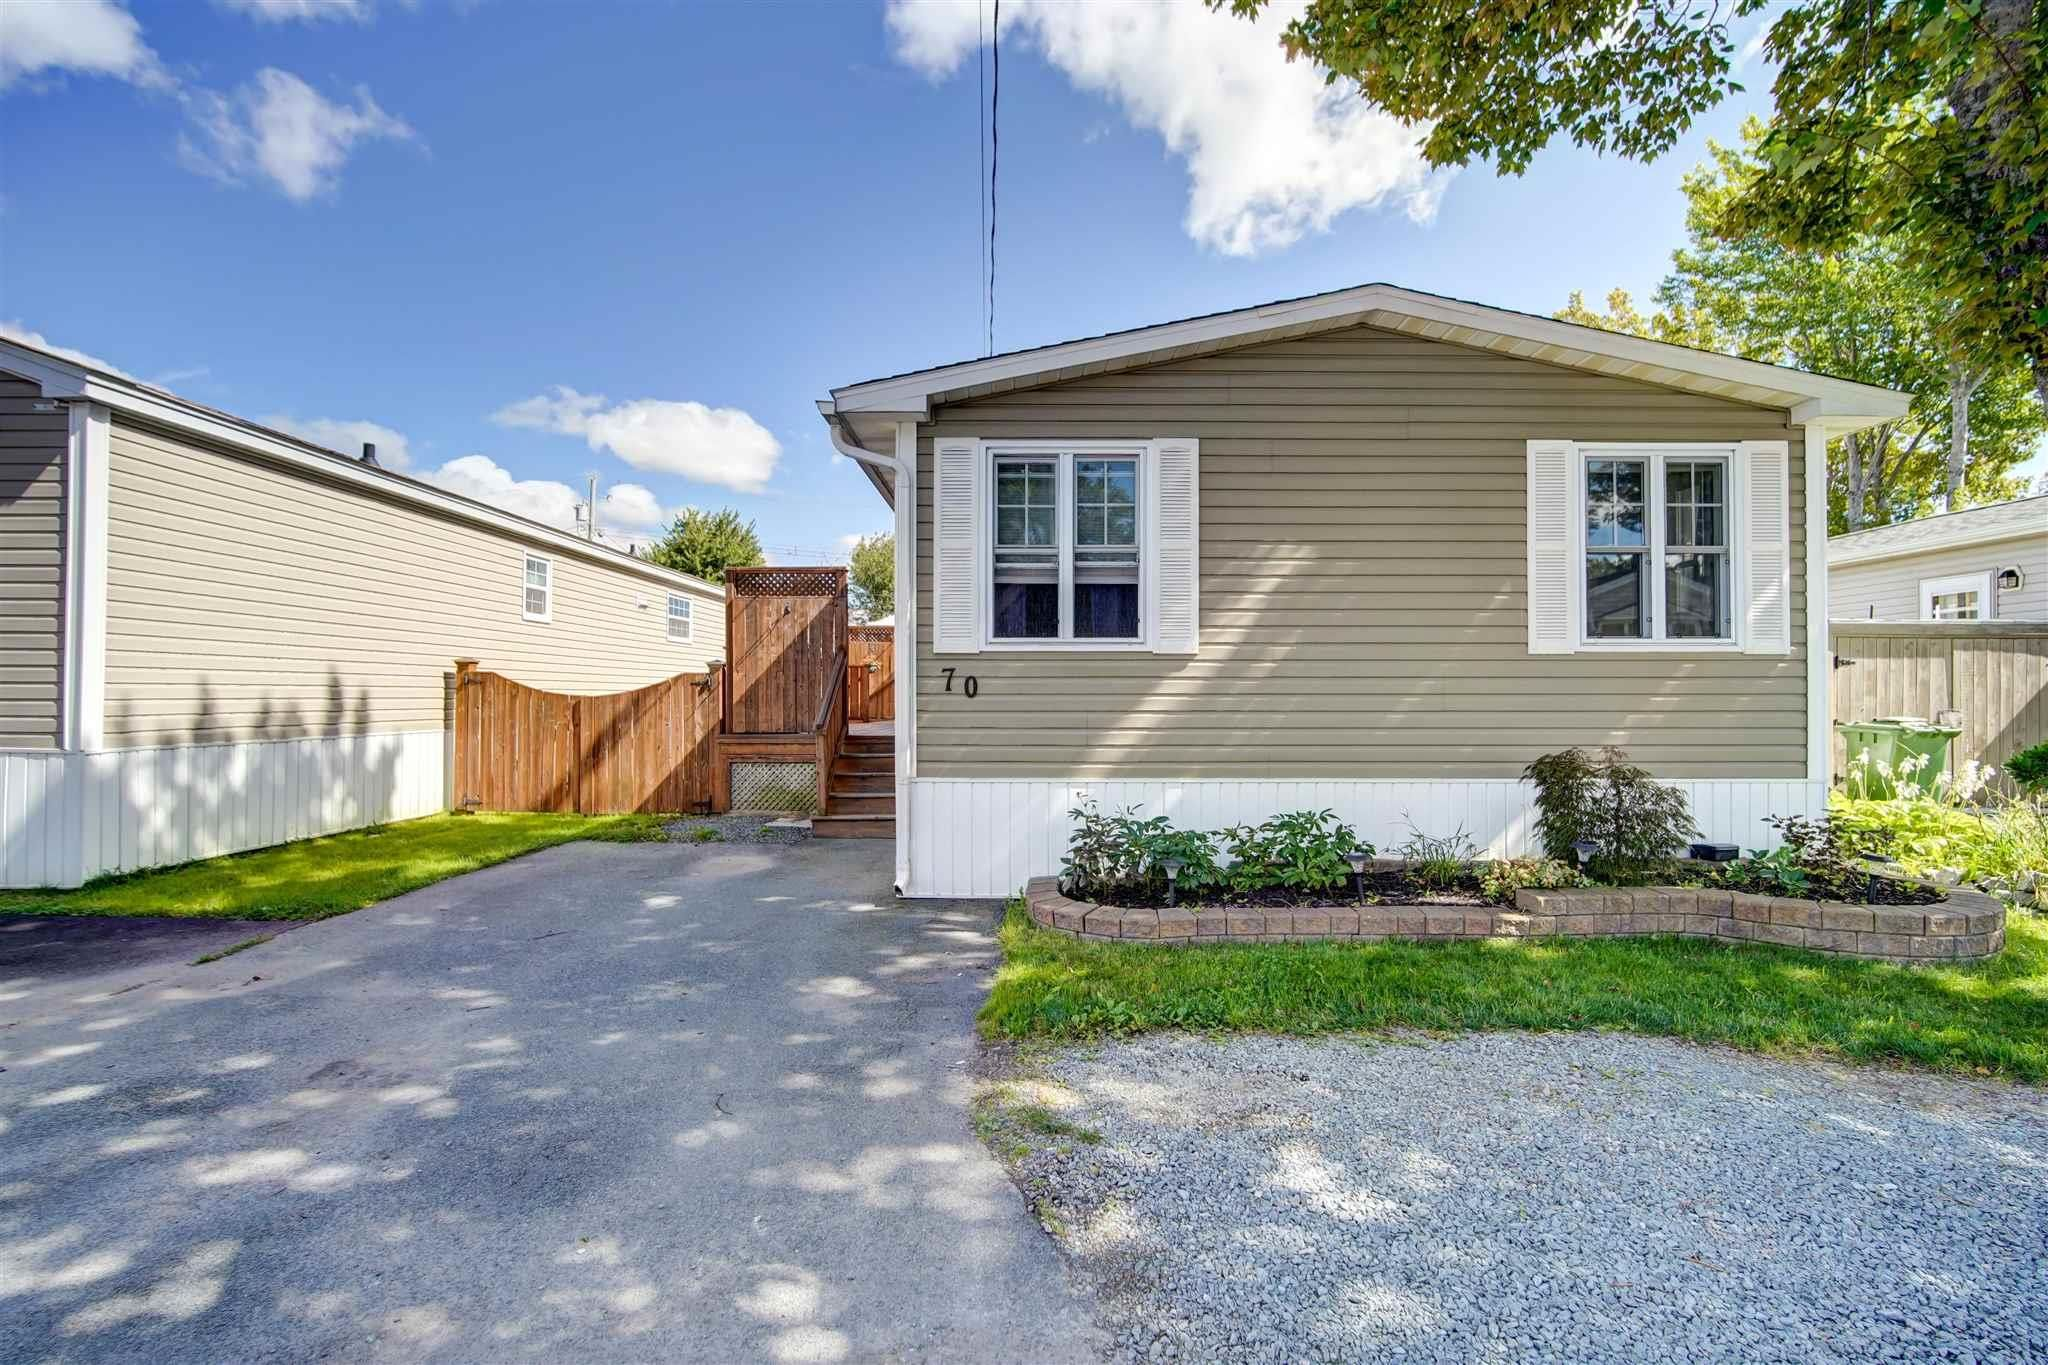 Main Photo: 70 Glenda Crescent in Fairview: 6-Fairview Residential for sale (Halifax-Dartmouth)  : MLS®# 202123737